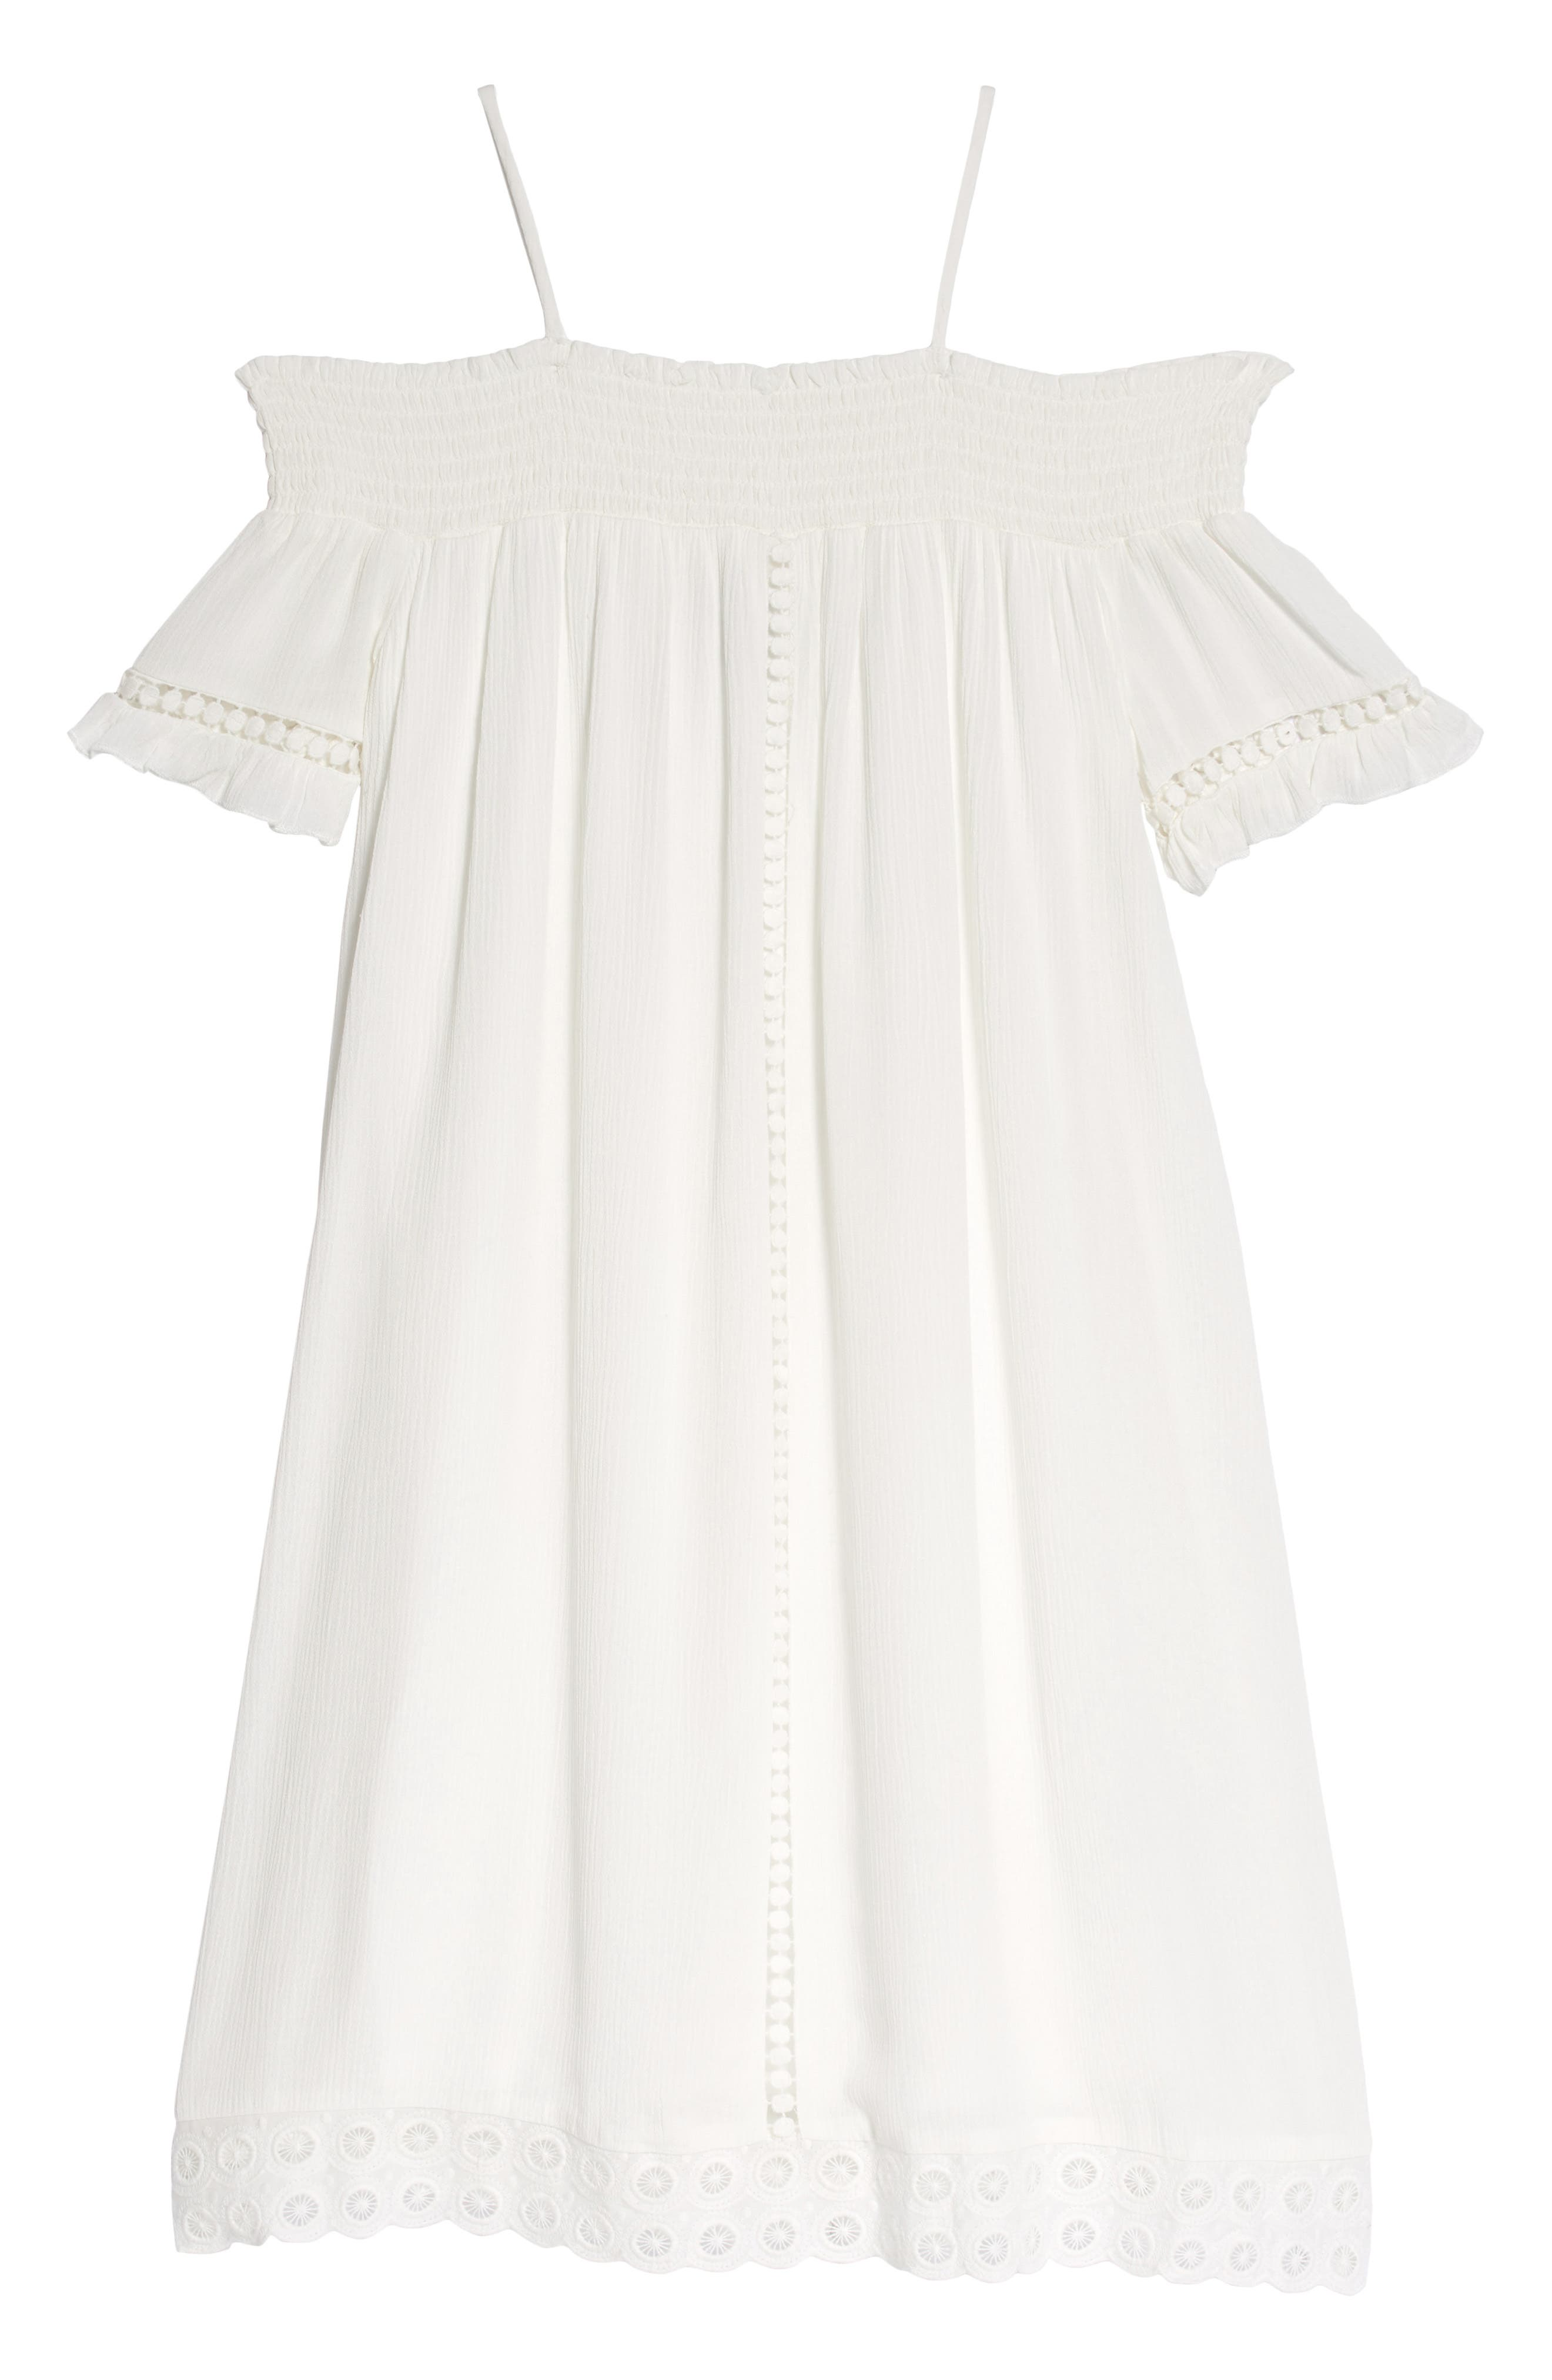 Woven Off the Shoulder Dress,                         Main,                         color, White